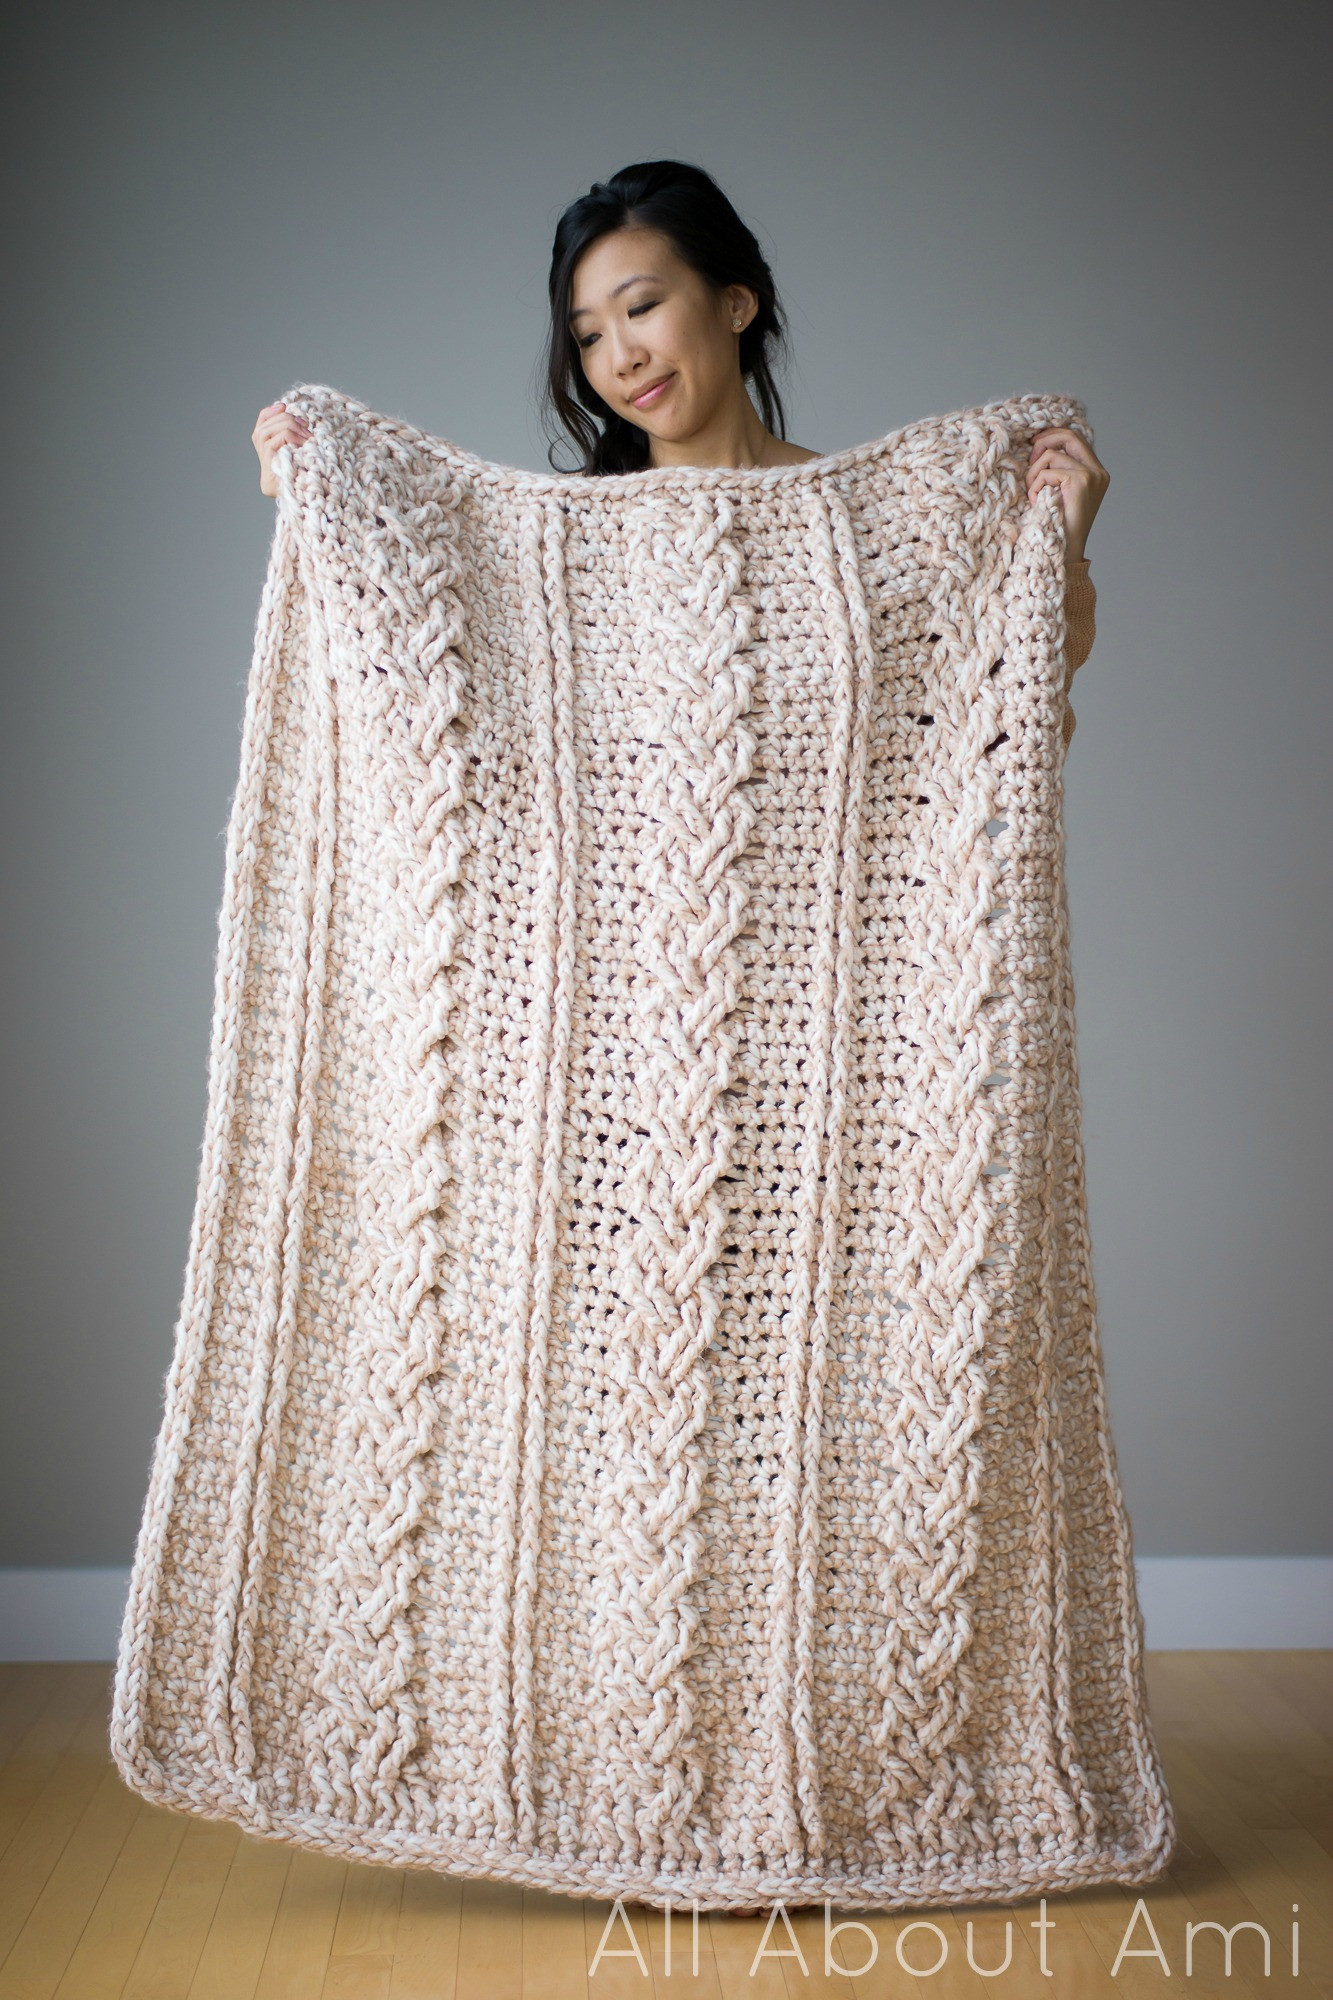 Best Of Chunky Braided Cabled Blanket All About Ami Crochet Cable Blanket Of Lovely 46 Models Crochet Cable Blanket